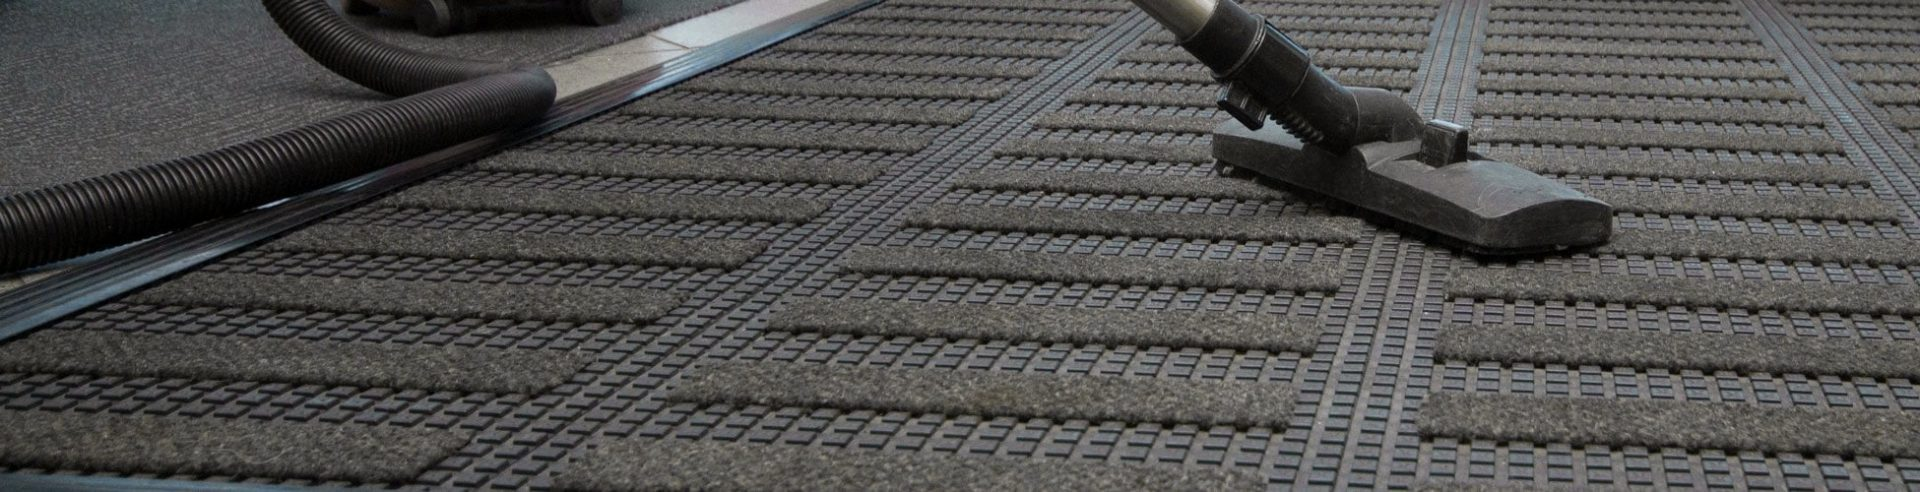 How to clean entrance matting